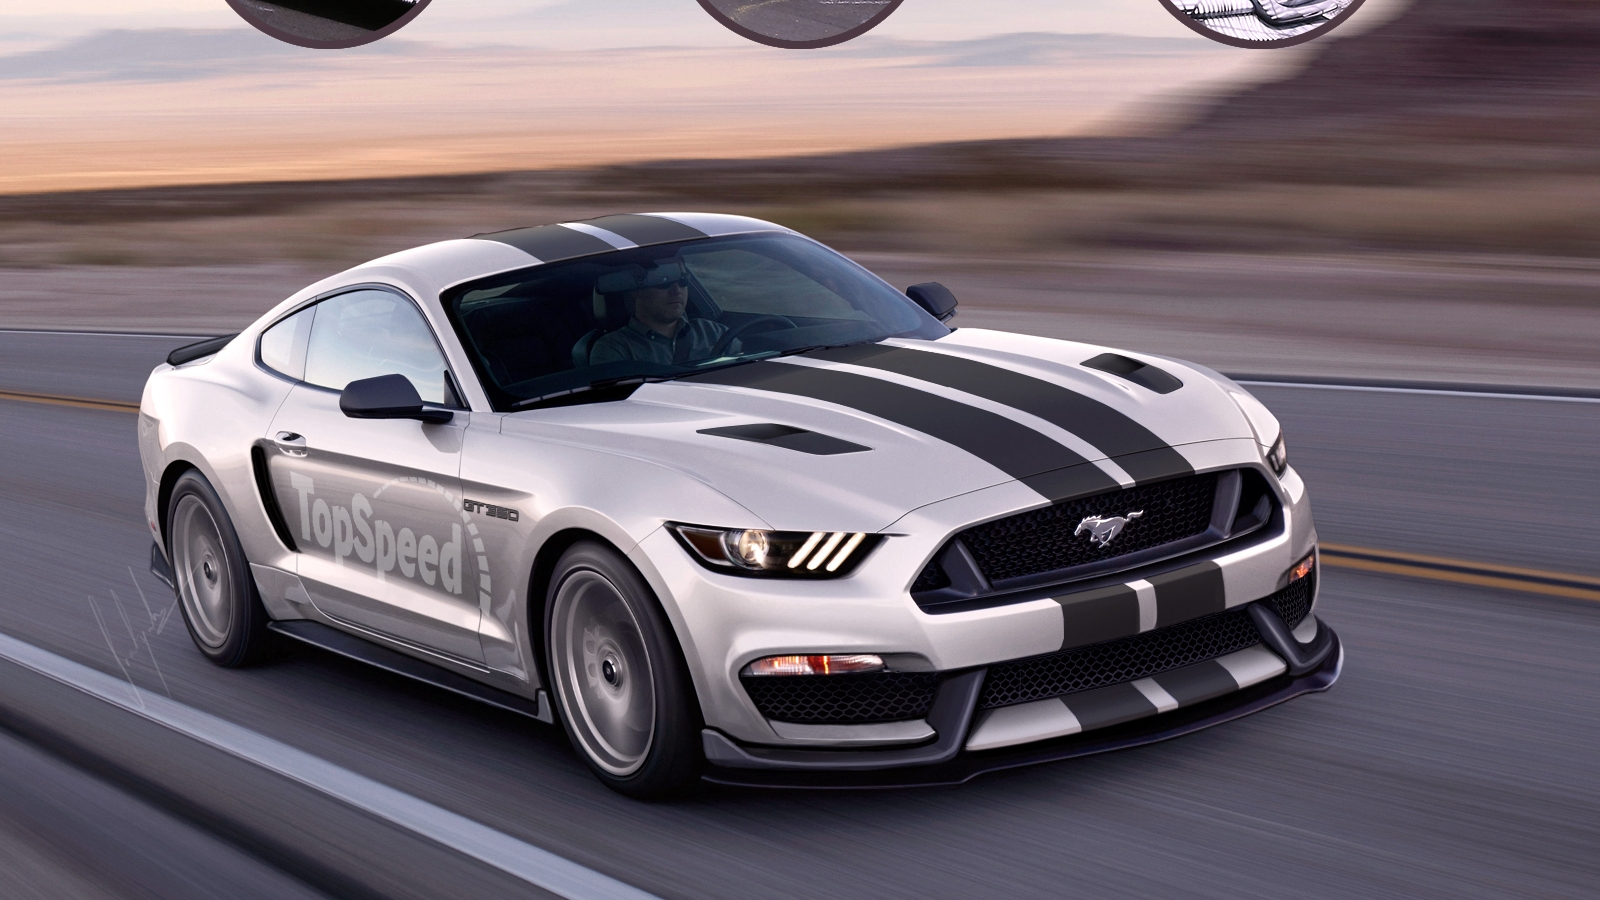 2016 2017 ford shelby gt350 mustang gallery 577892 top speed. Black Bedroom Furniture Sets. Home Design Ideas